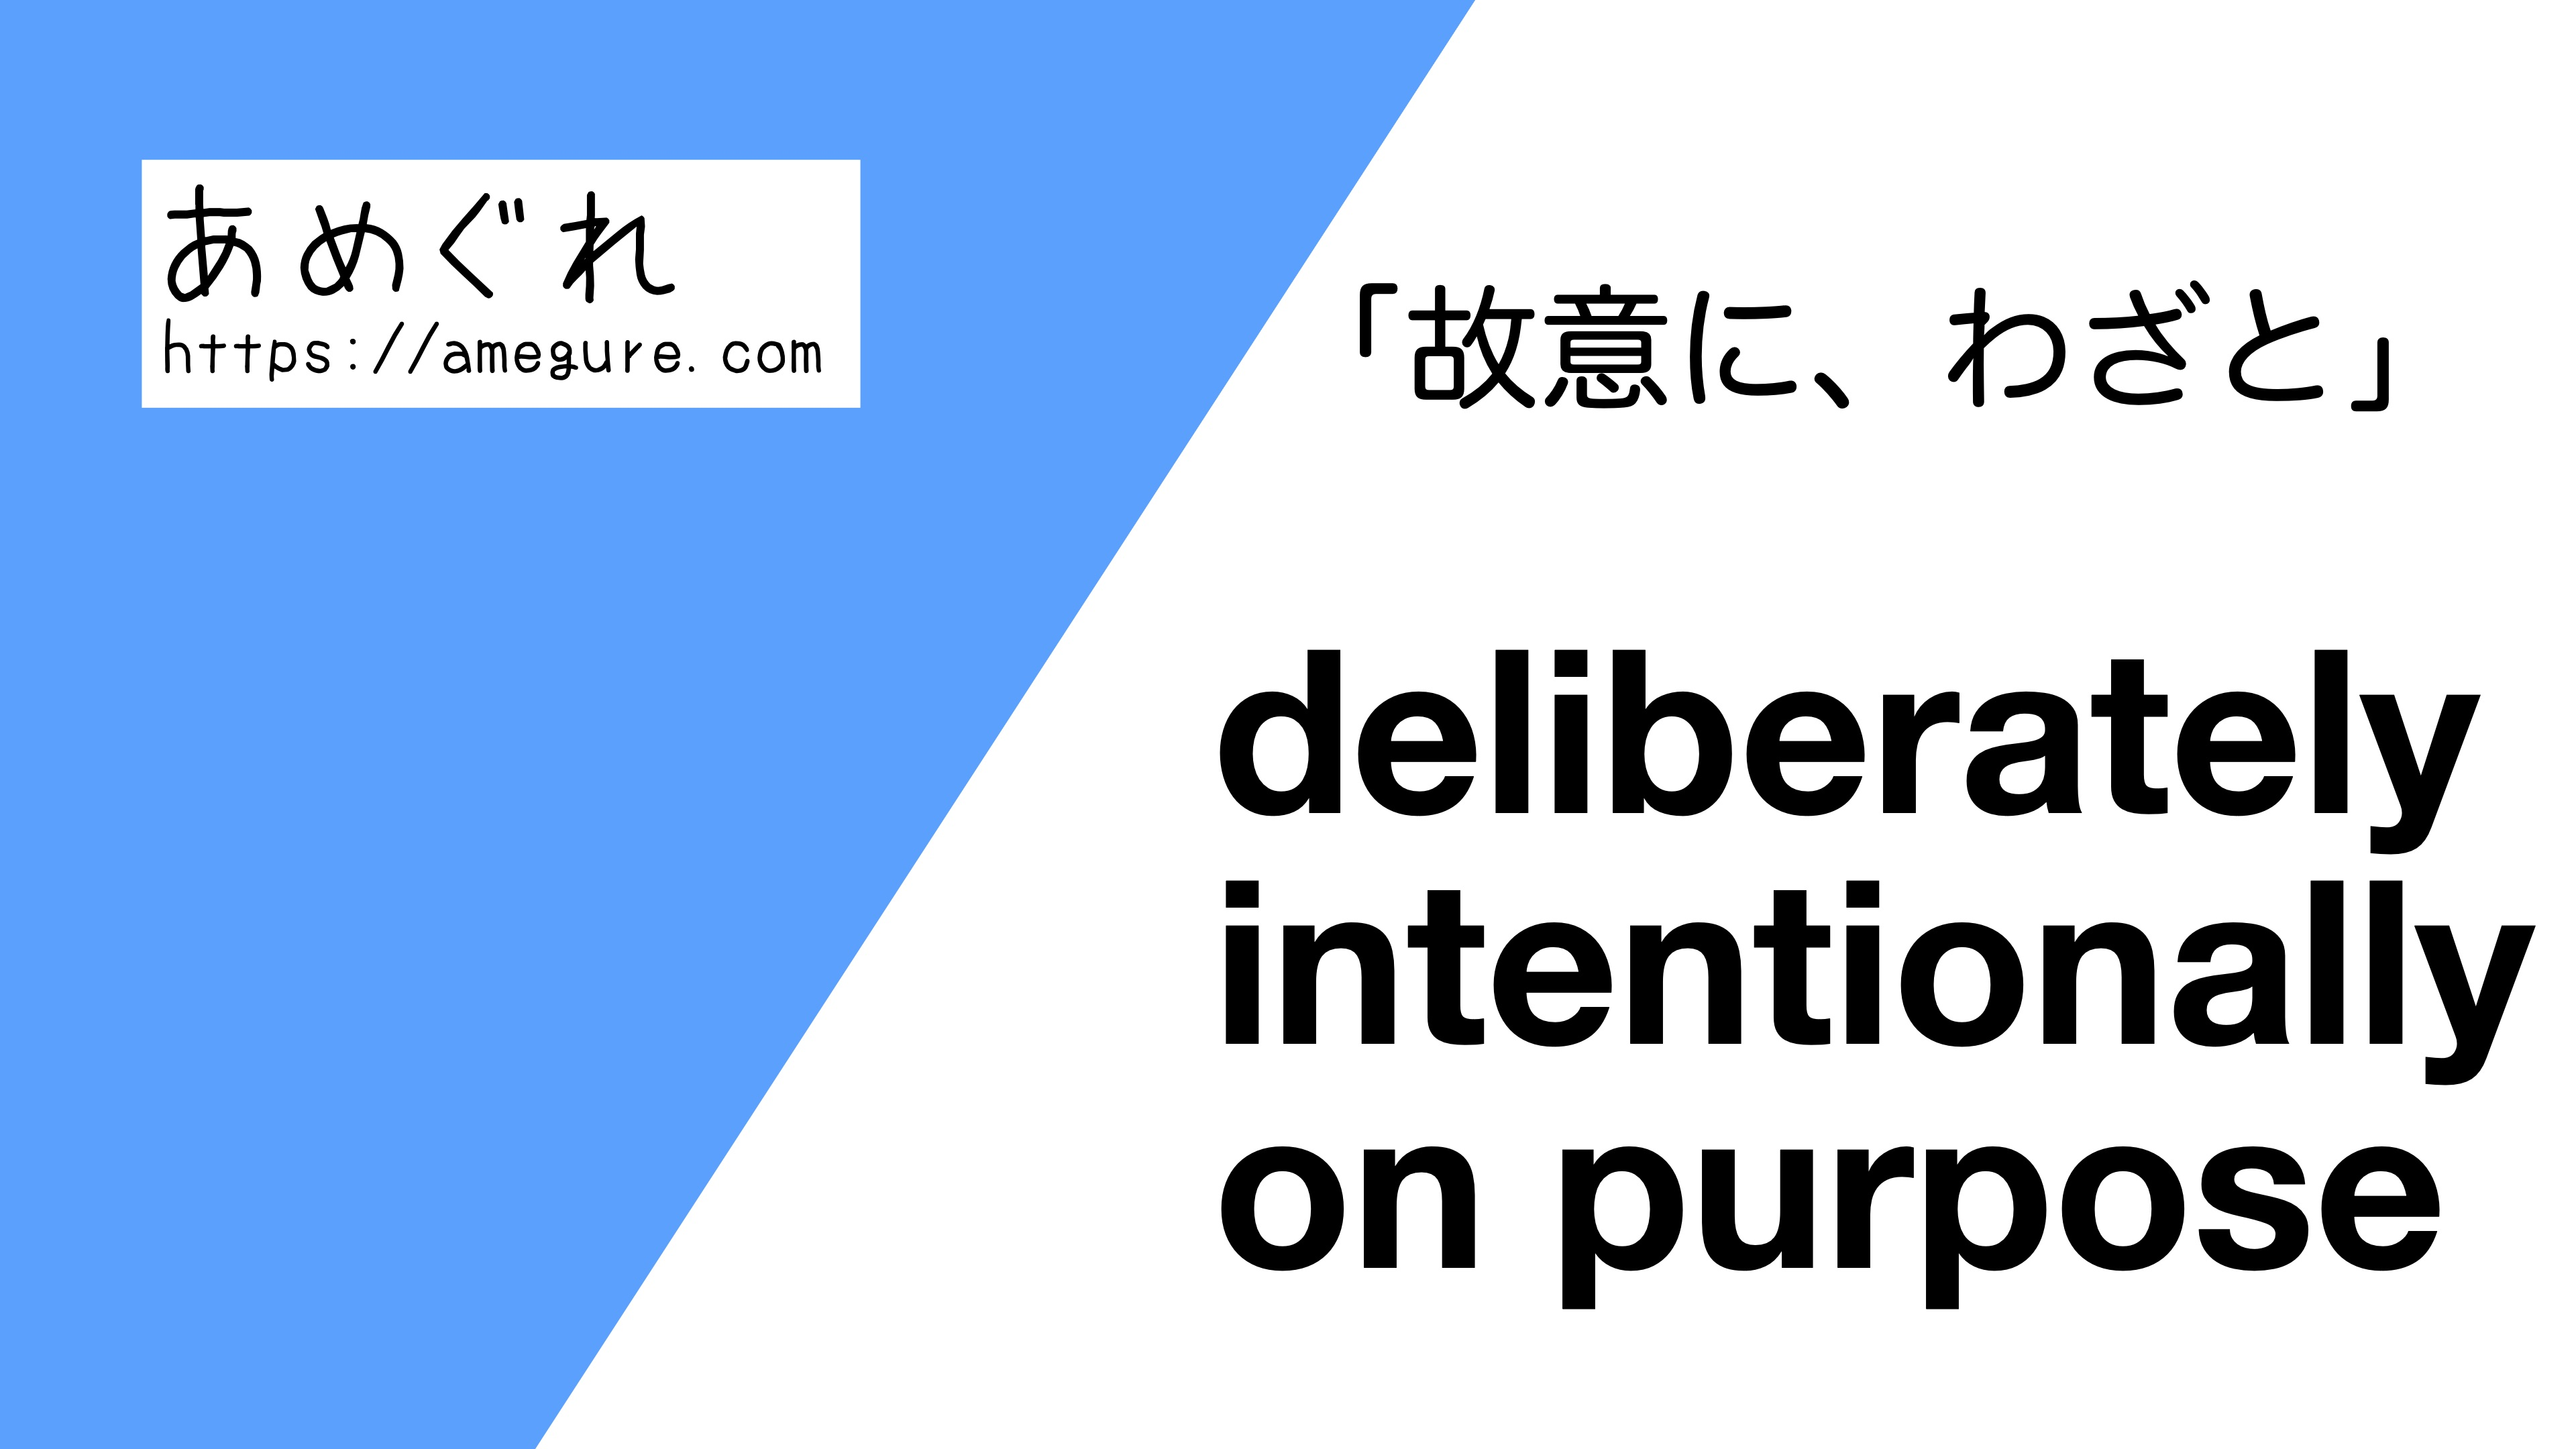 deliberrately-intentionally-on-purpose違い